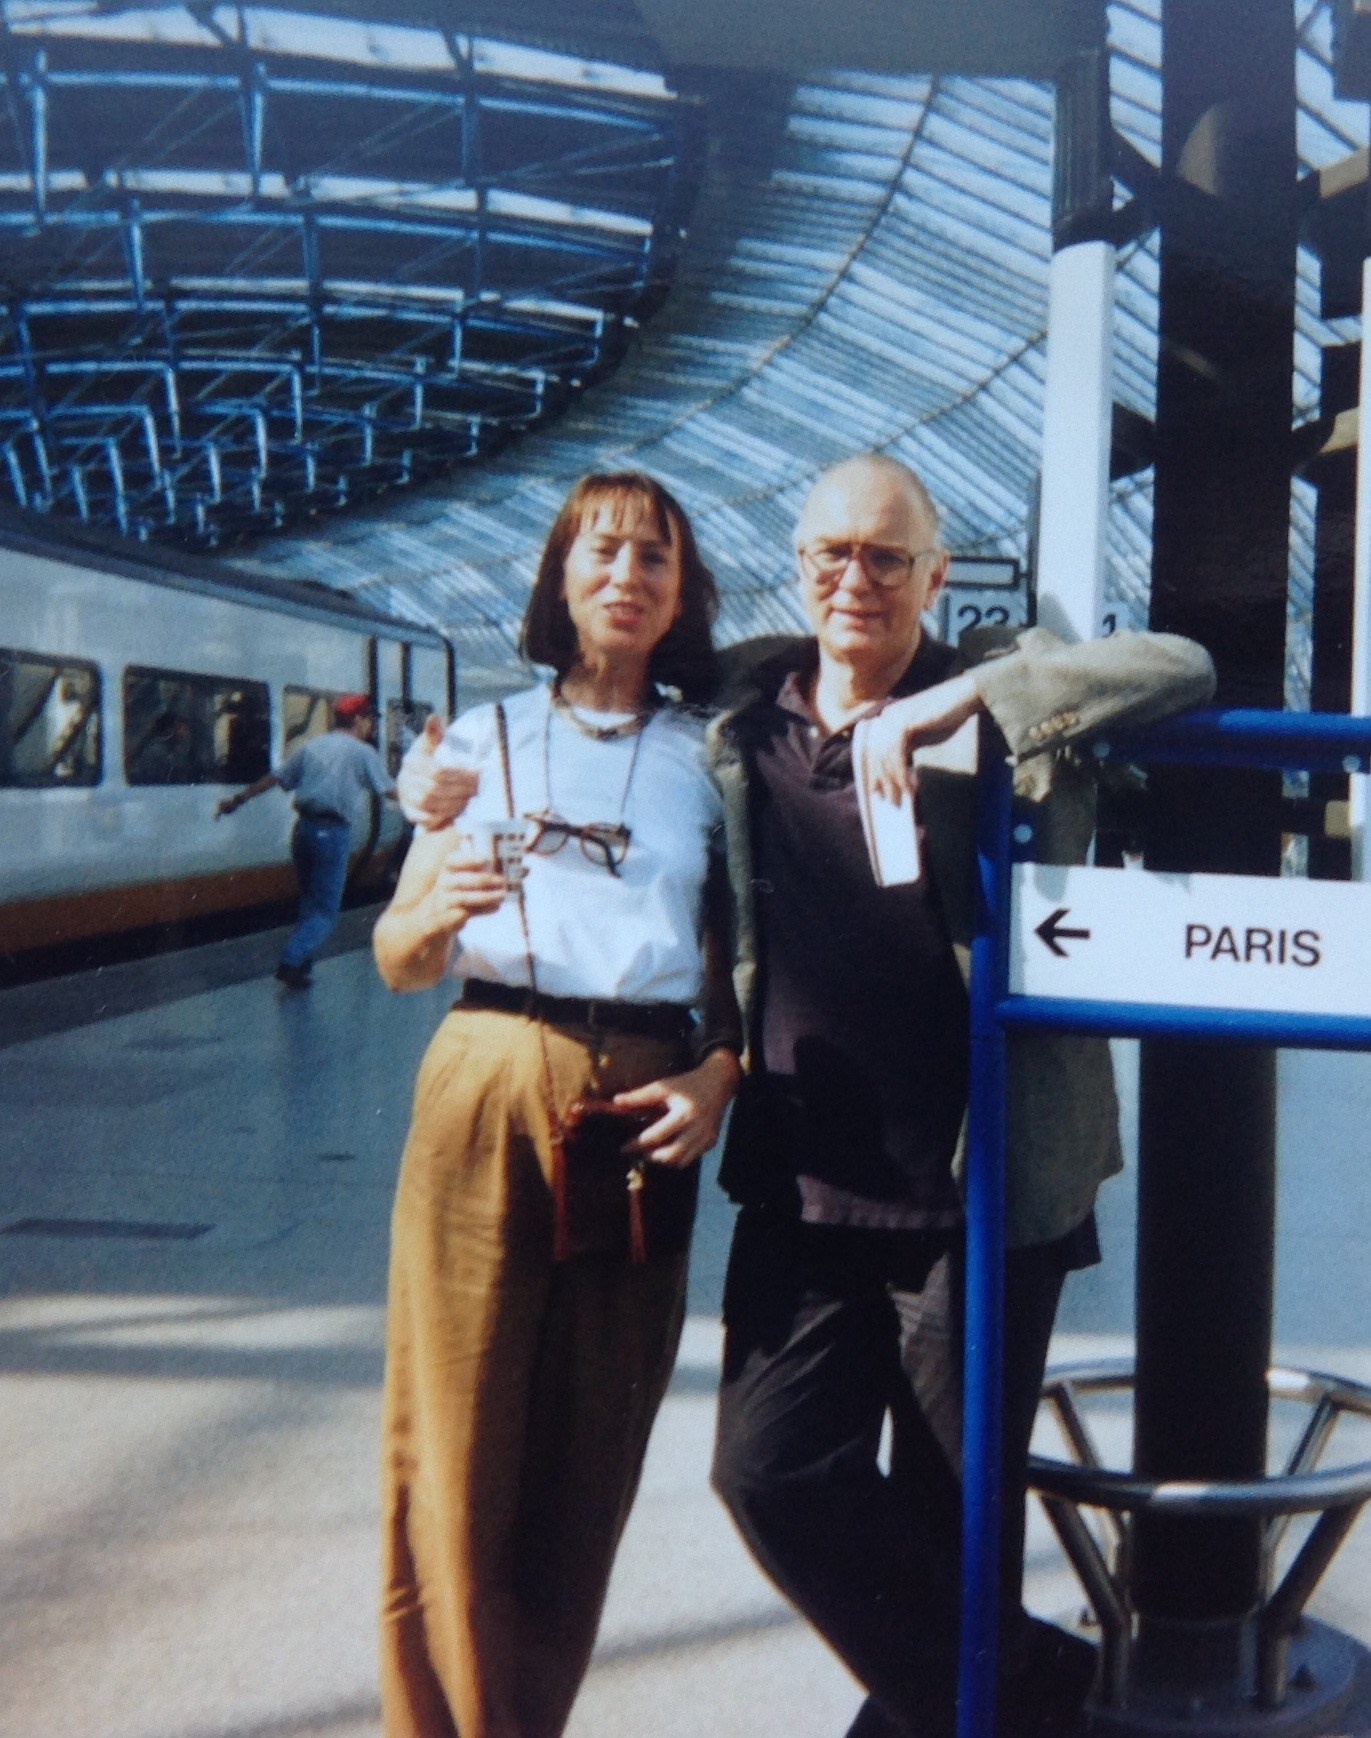 Jim and Wendy on a trip (Thank you Tom and Bettsy Mosimann)